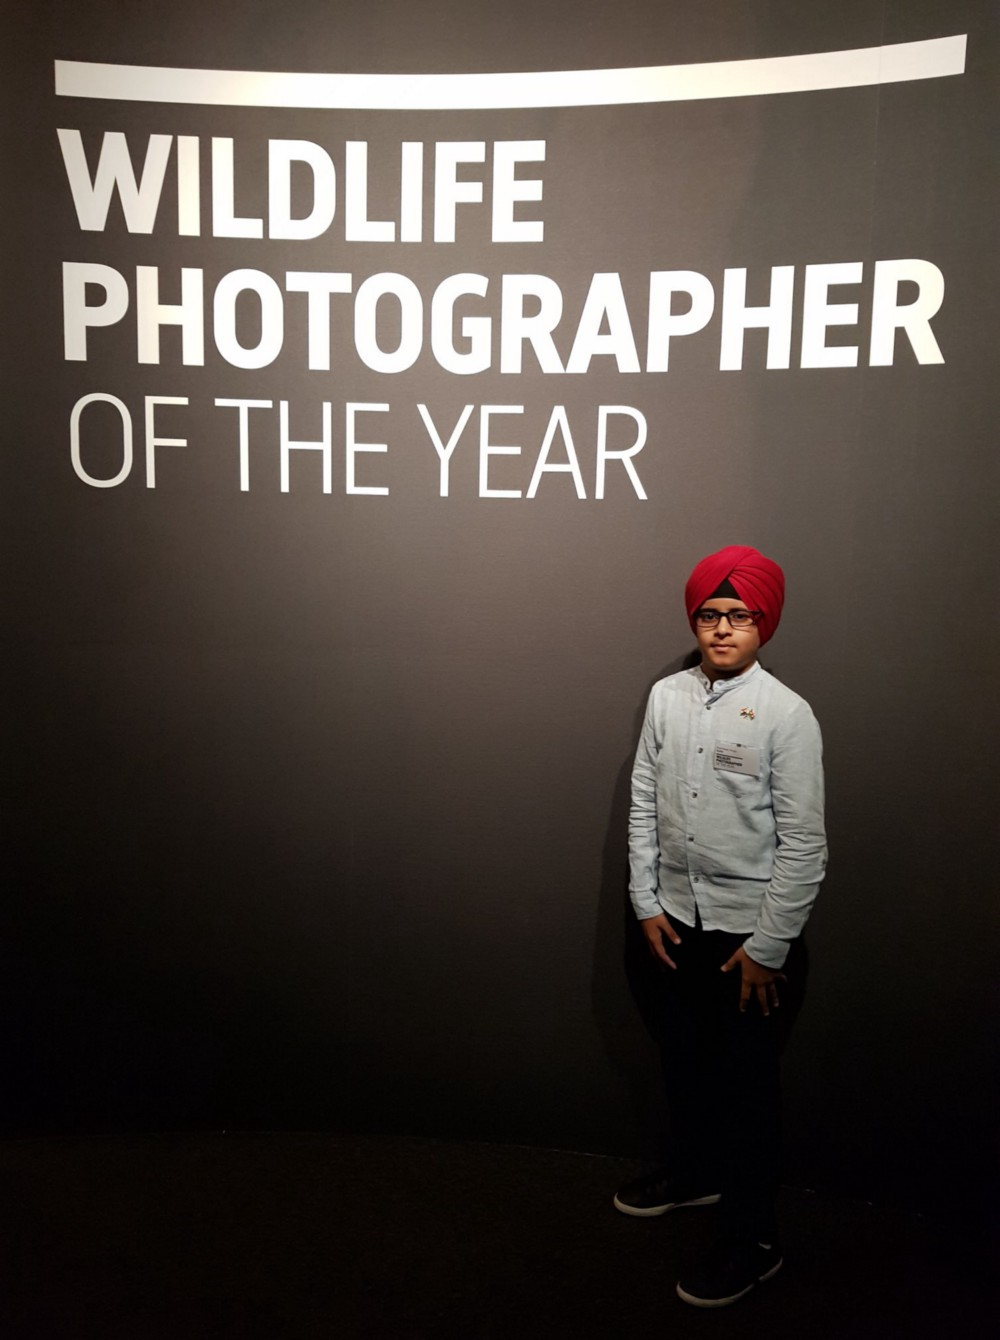 In the ceremony of Wildlife Photographer of the Year-2018